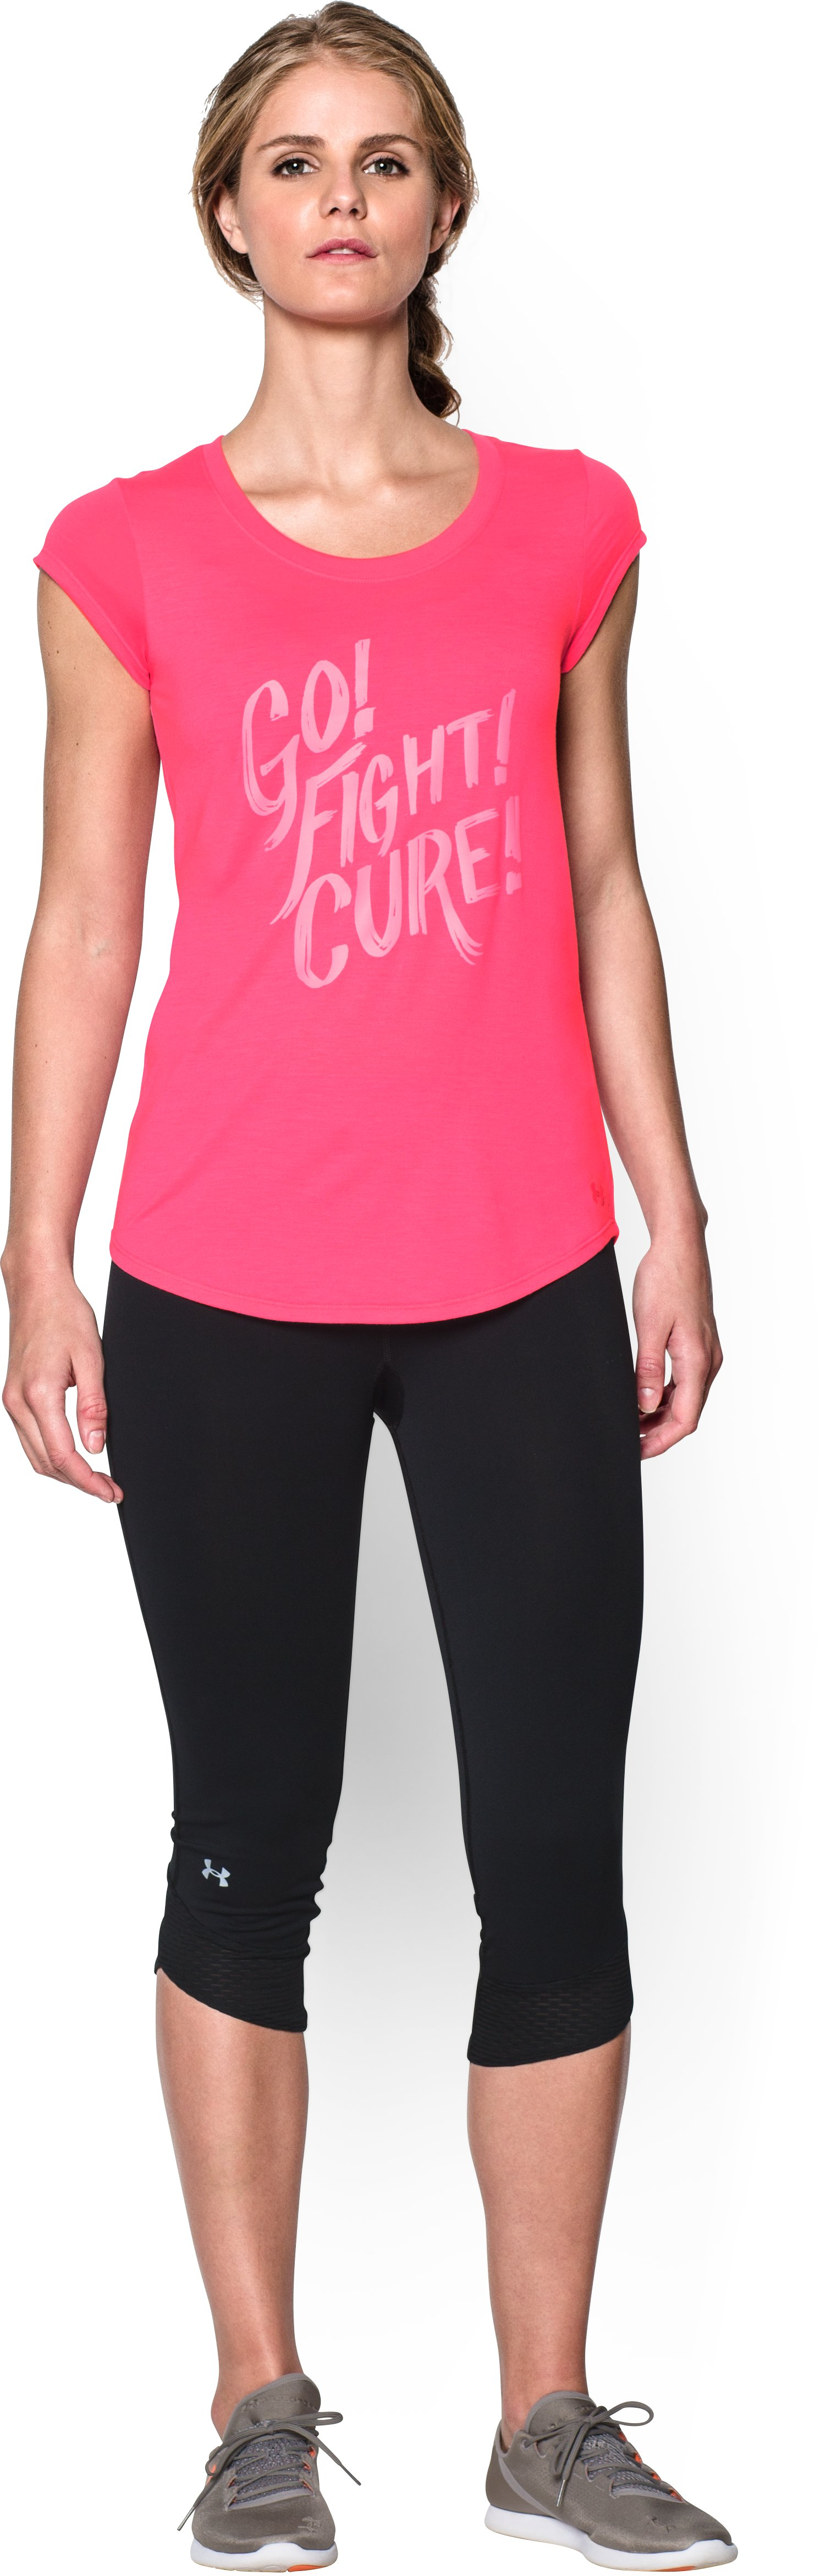 Women's UA Power In Pink® Go Fight Cure T-Shirt, Cerise, Front